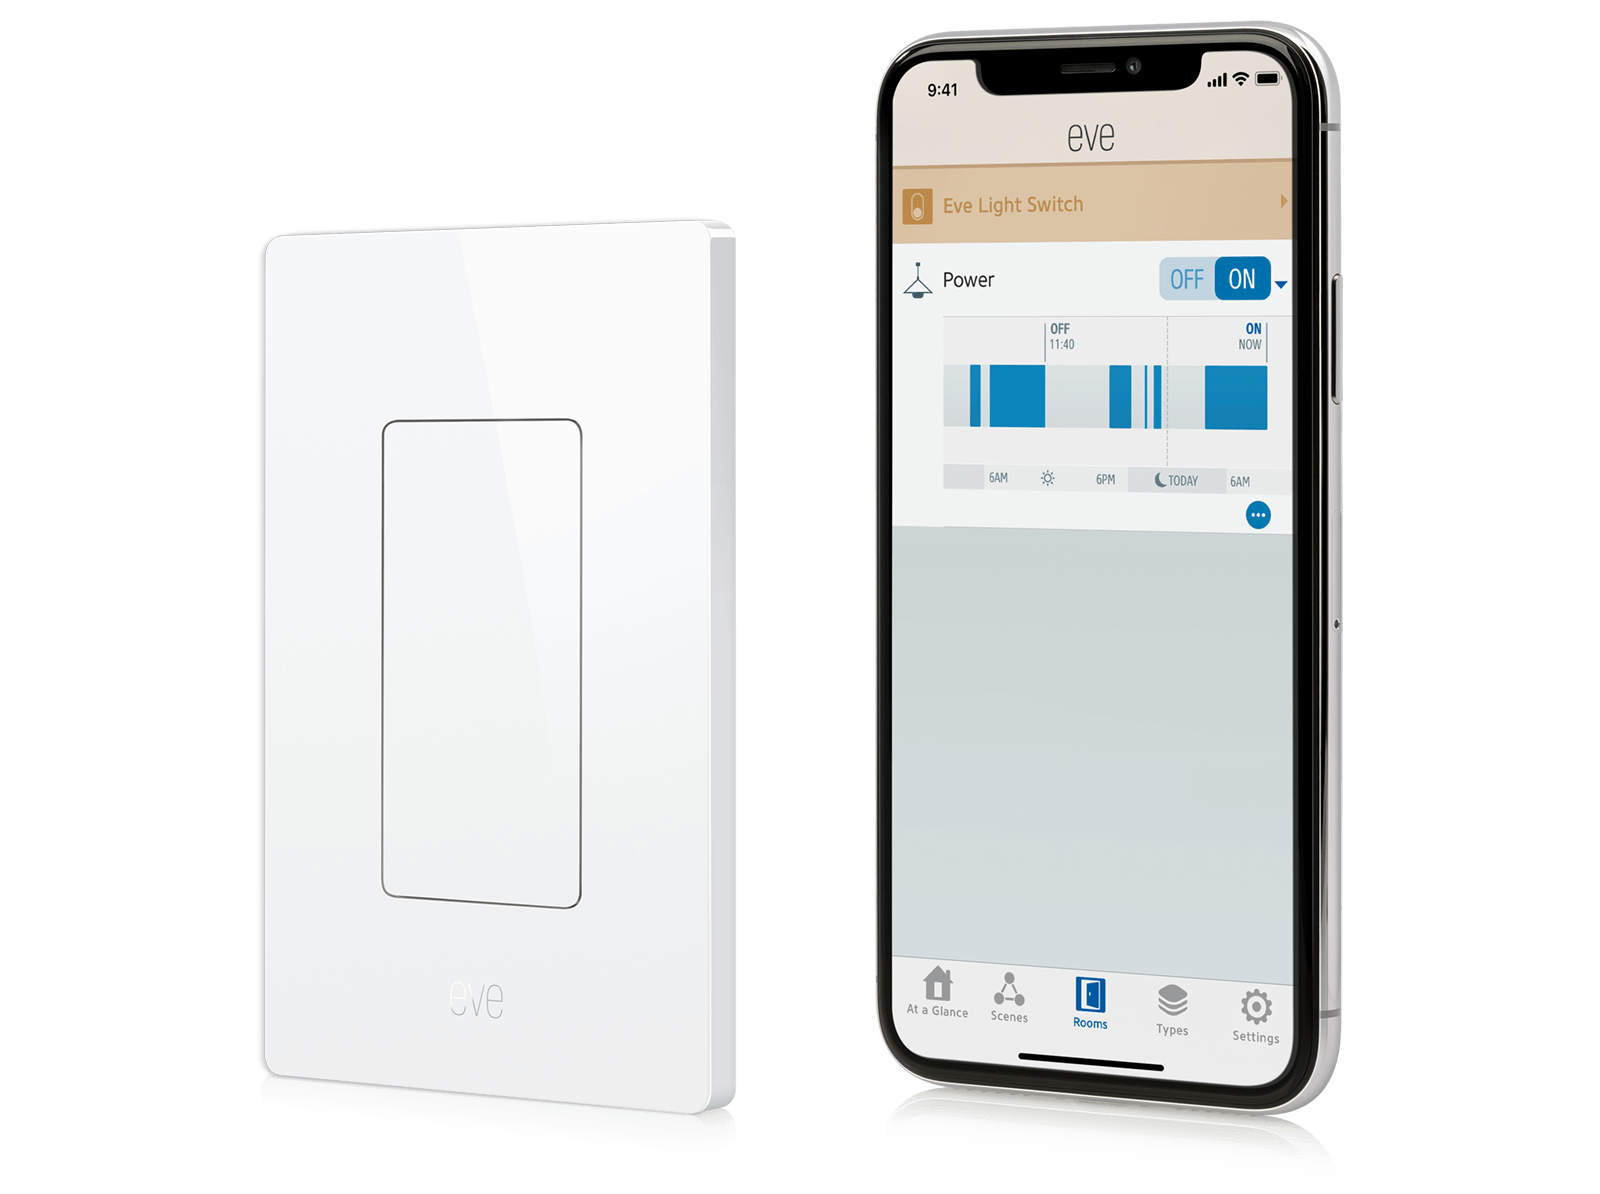 Eve Light Switch Two Way Electrical Wiring Diagram Hd Walls Find Wallpapers And To See Concise Records Gain Insights Enjoy Full Control Of Your Connected Home Look No Further Than The App